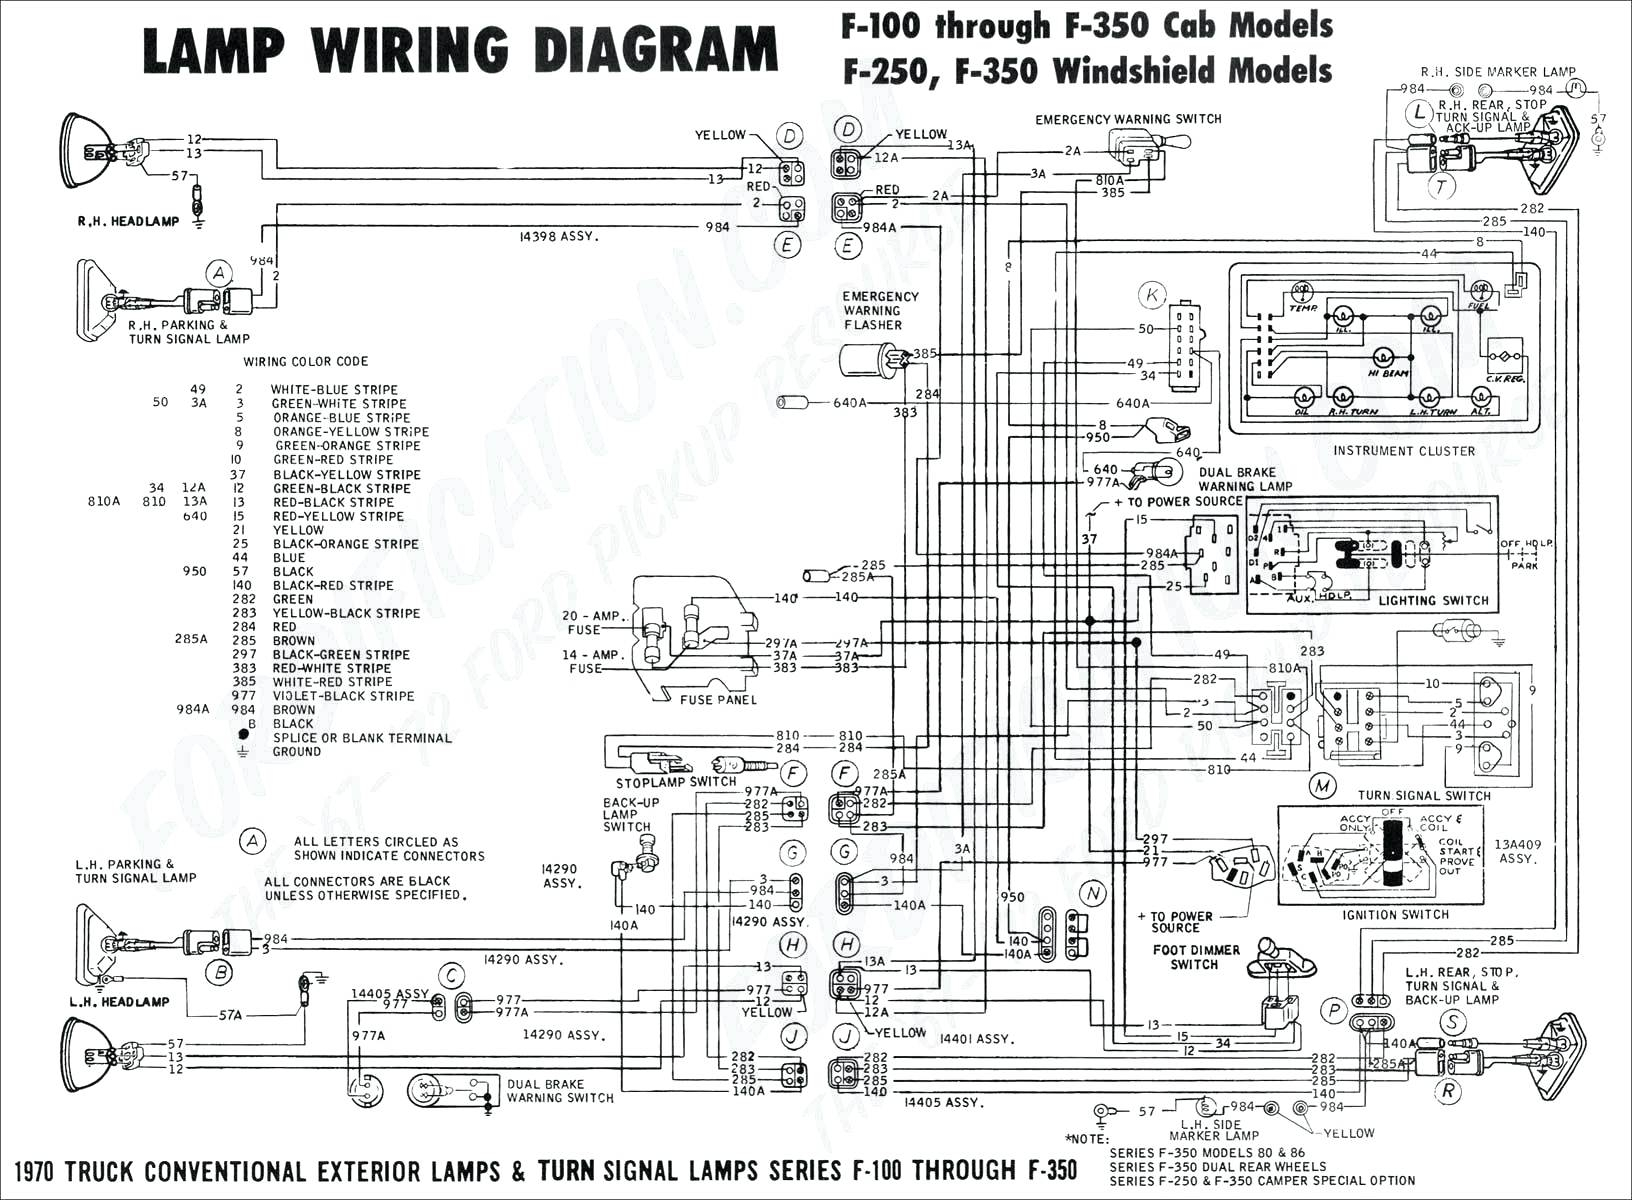 Get Dodge Ram Trailer Wiring Diagram Sample